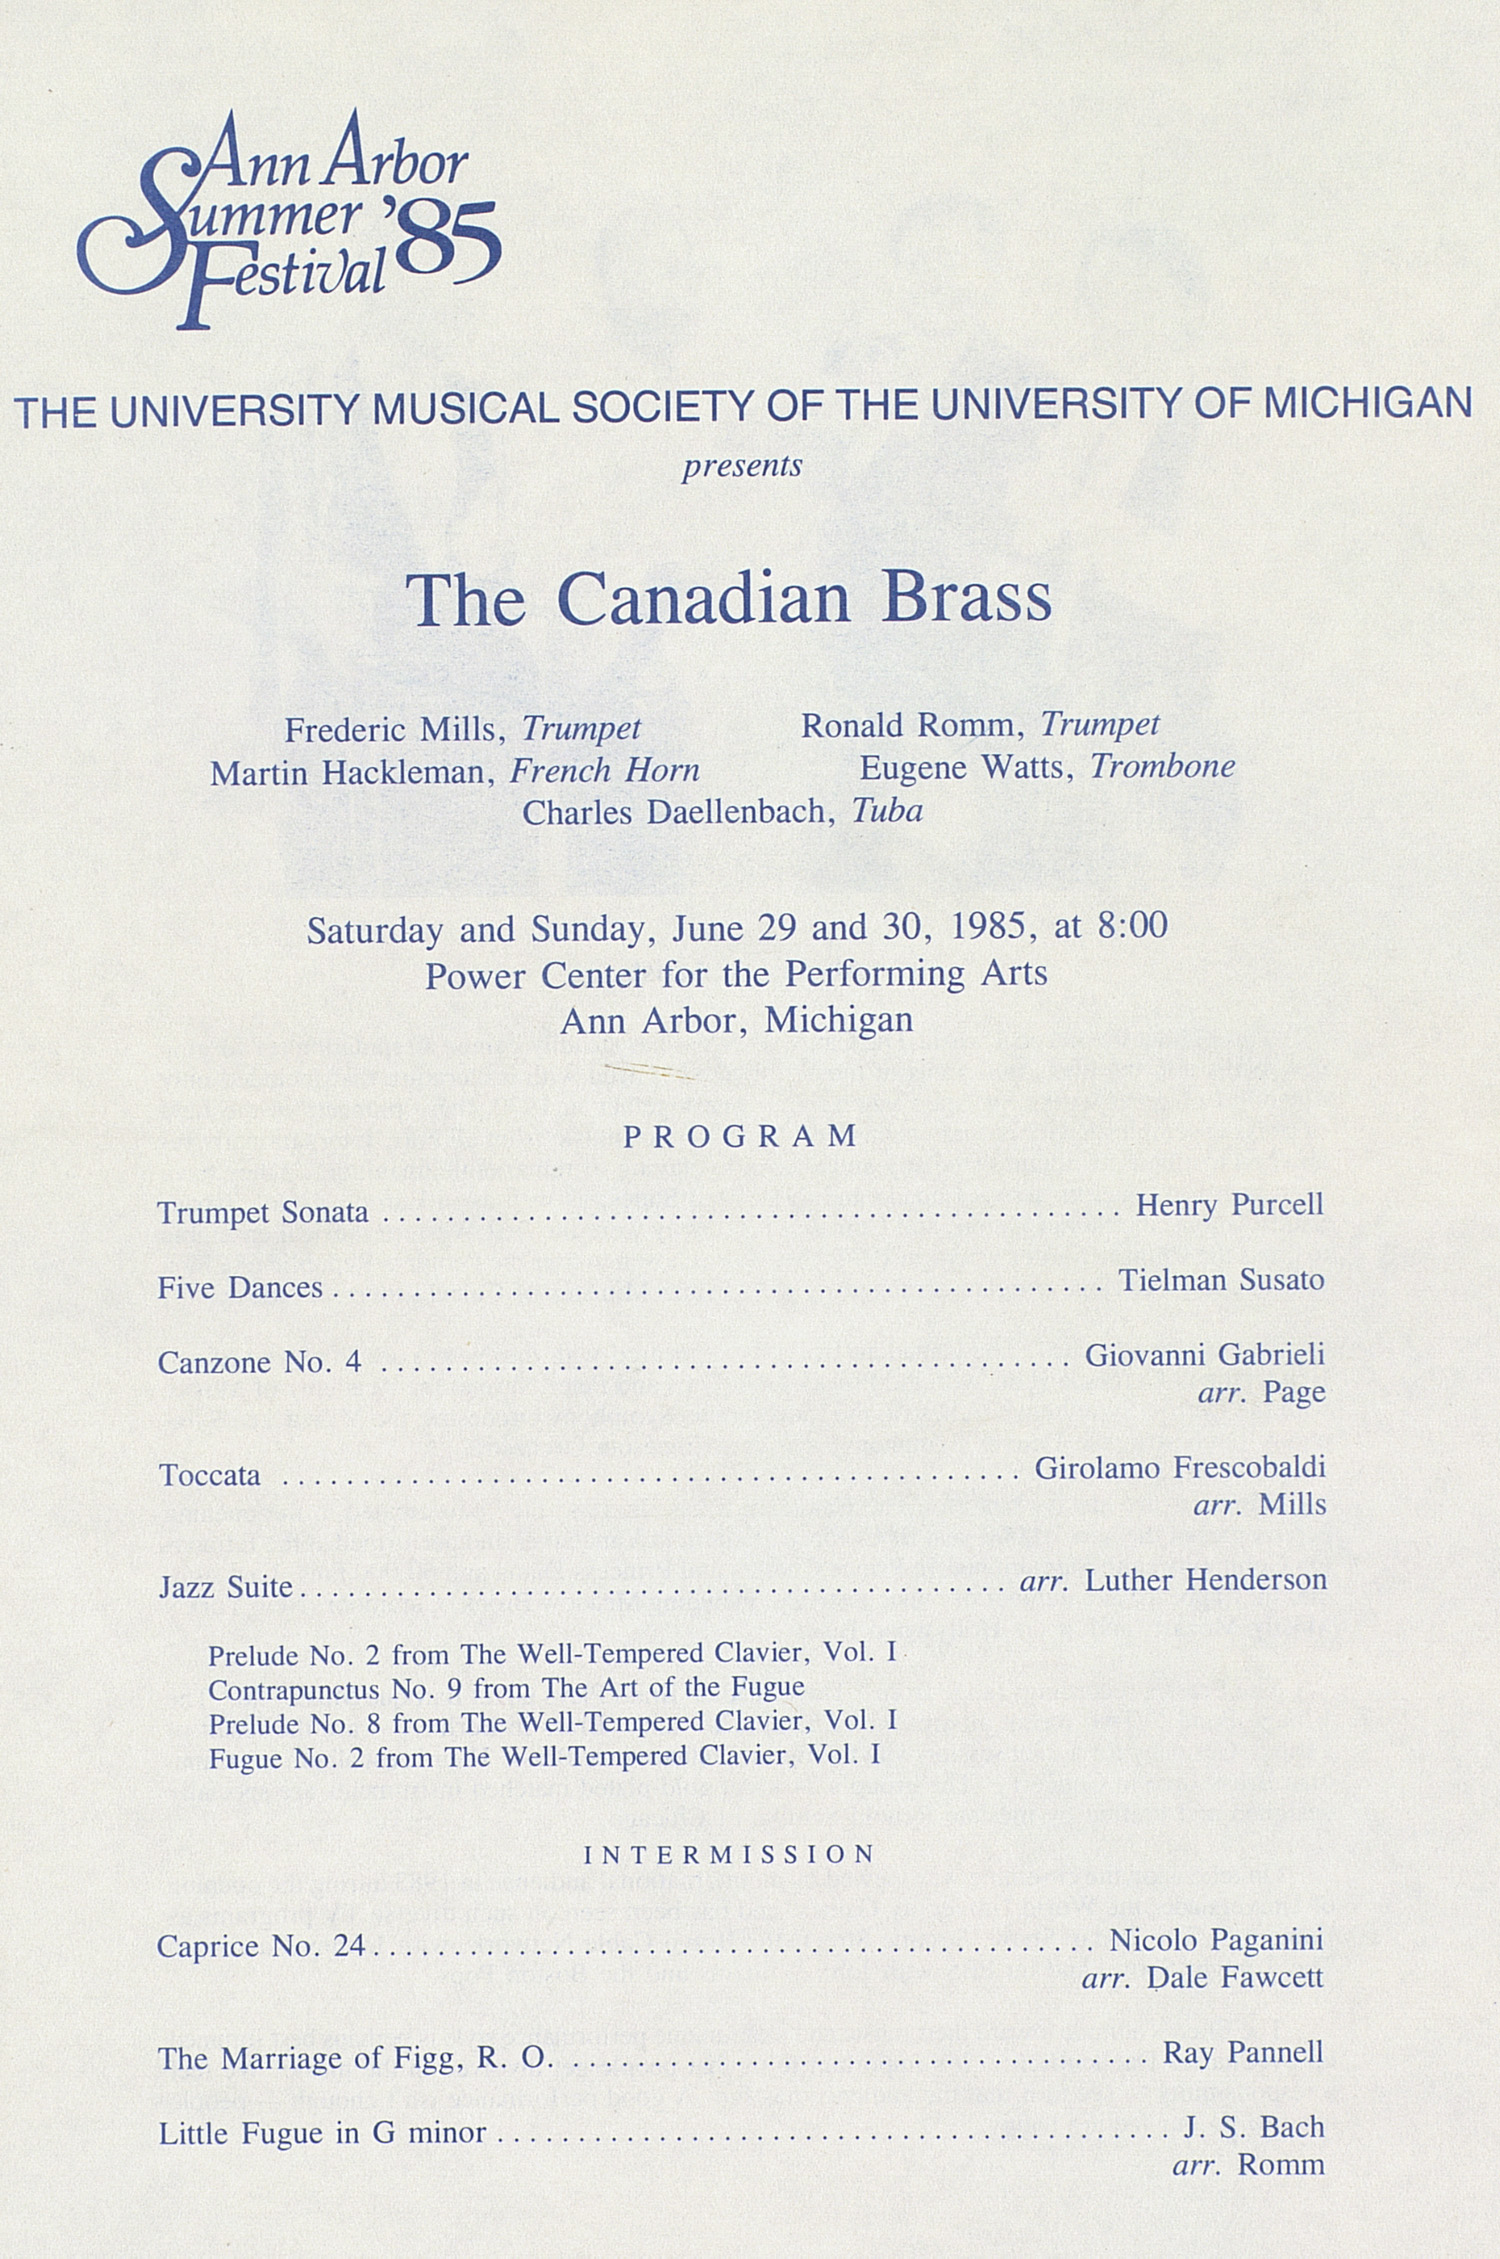 UMS Concert Program, June 29 And 30: The Canadian Brass --  image